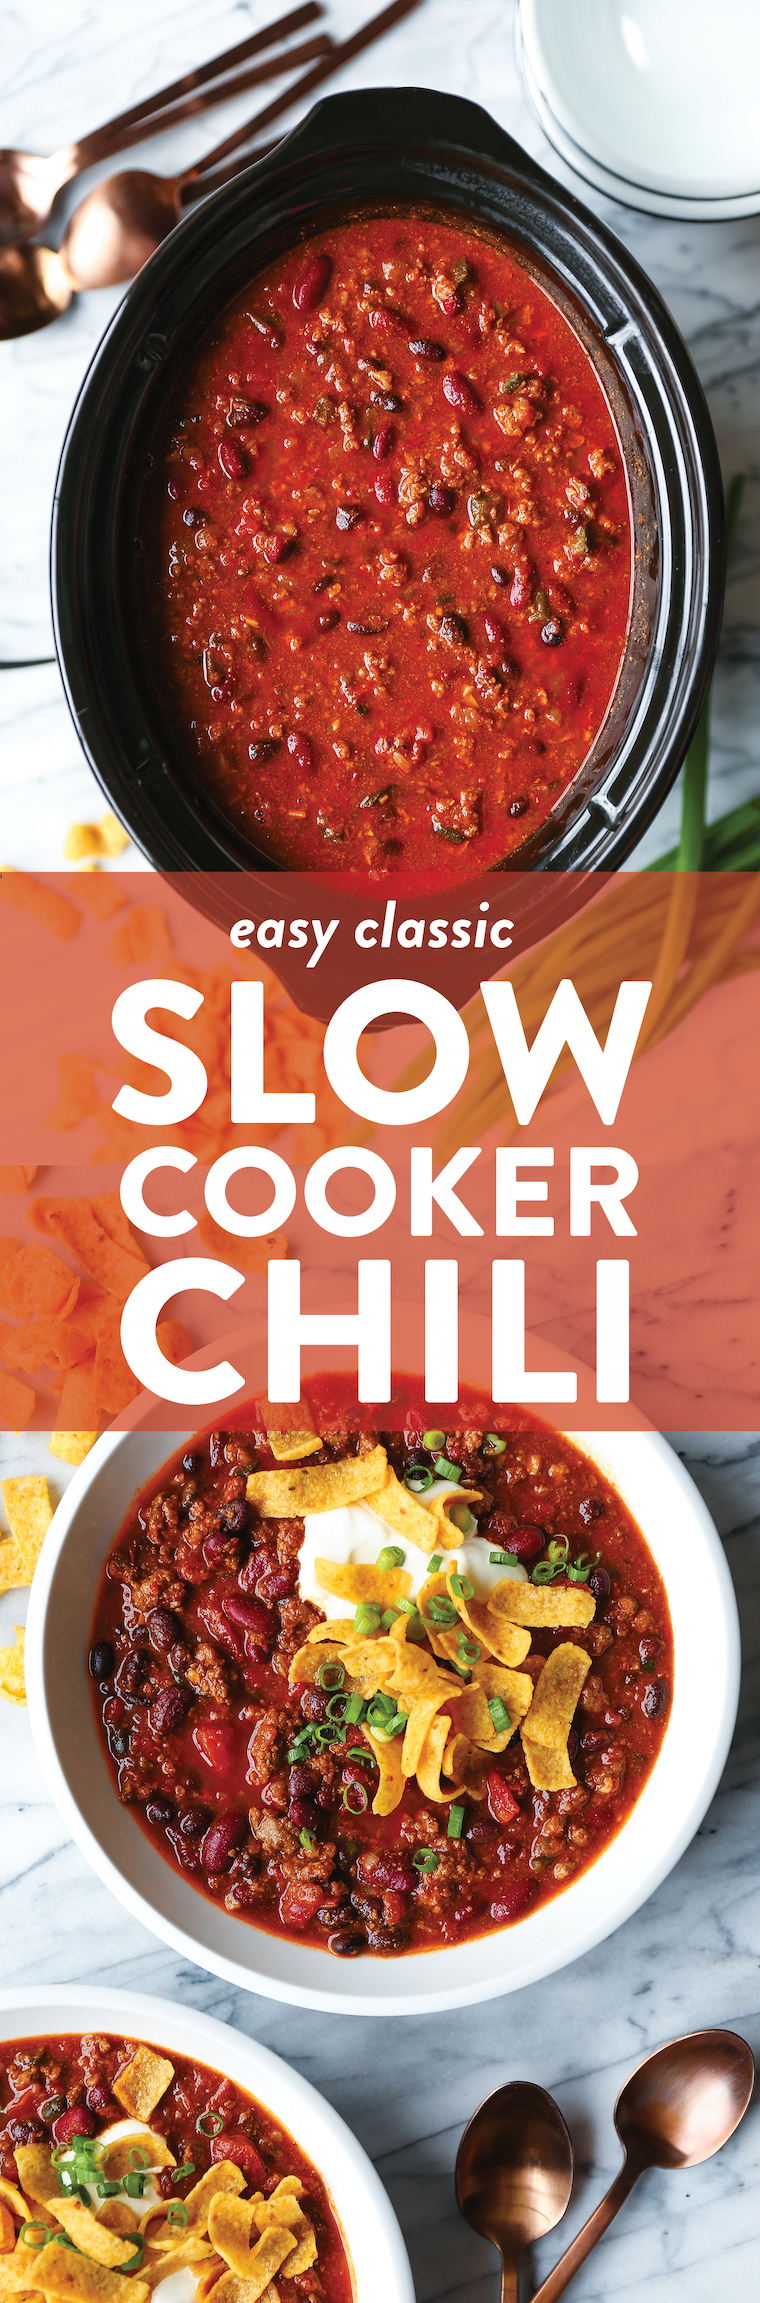 Easy Slow Cooker Chili - Come home to the best homemade chili! It's an amazingly